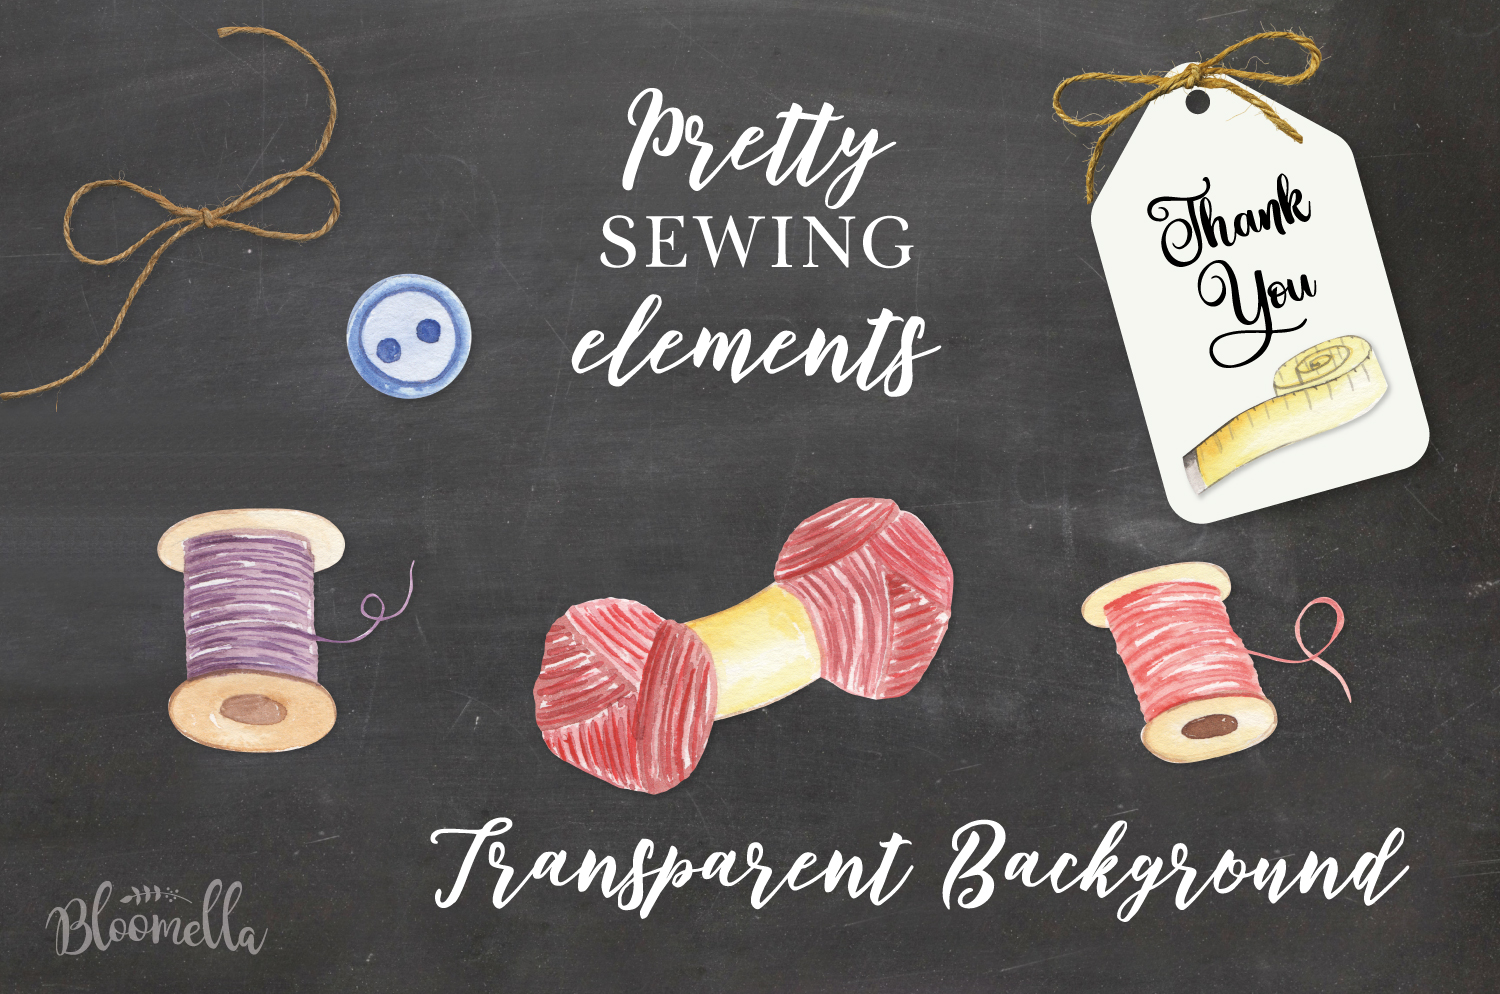 Sewing Pretty Sew Needle Watercolor 13 Elements Wool Stitch example image 3